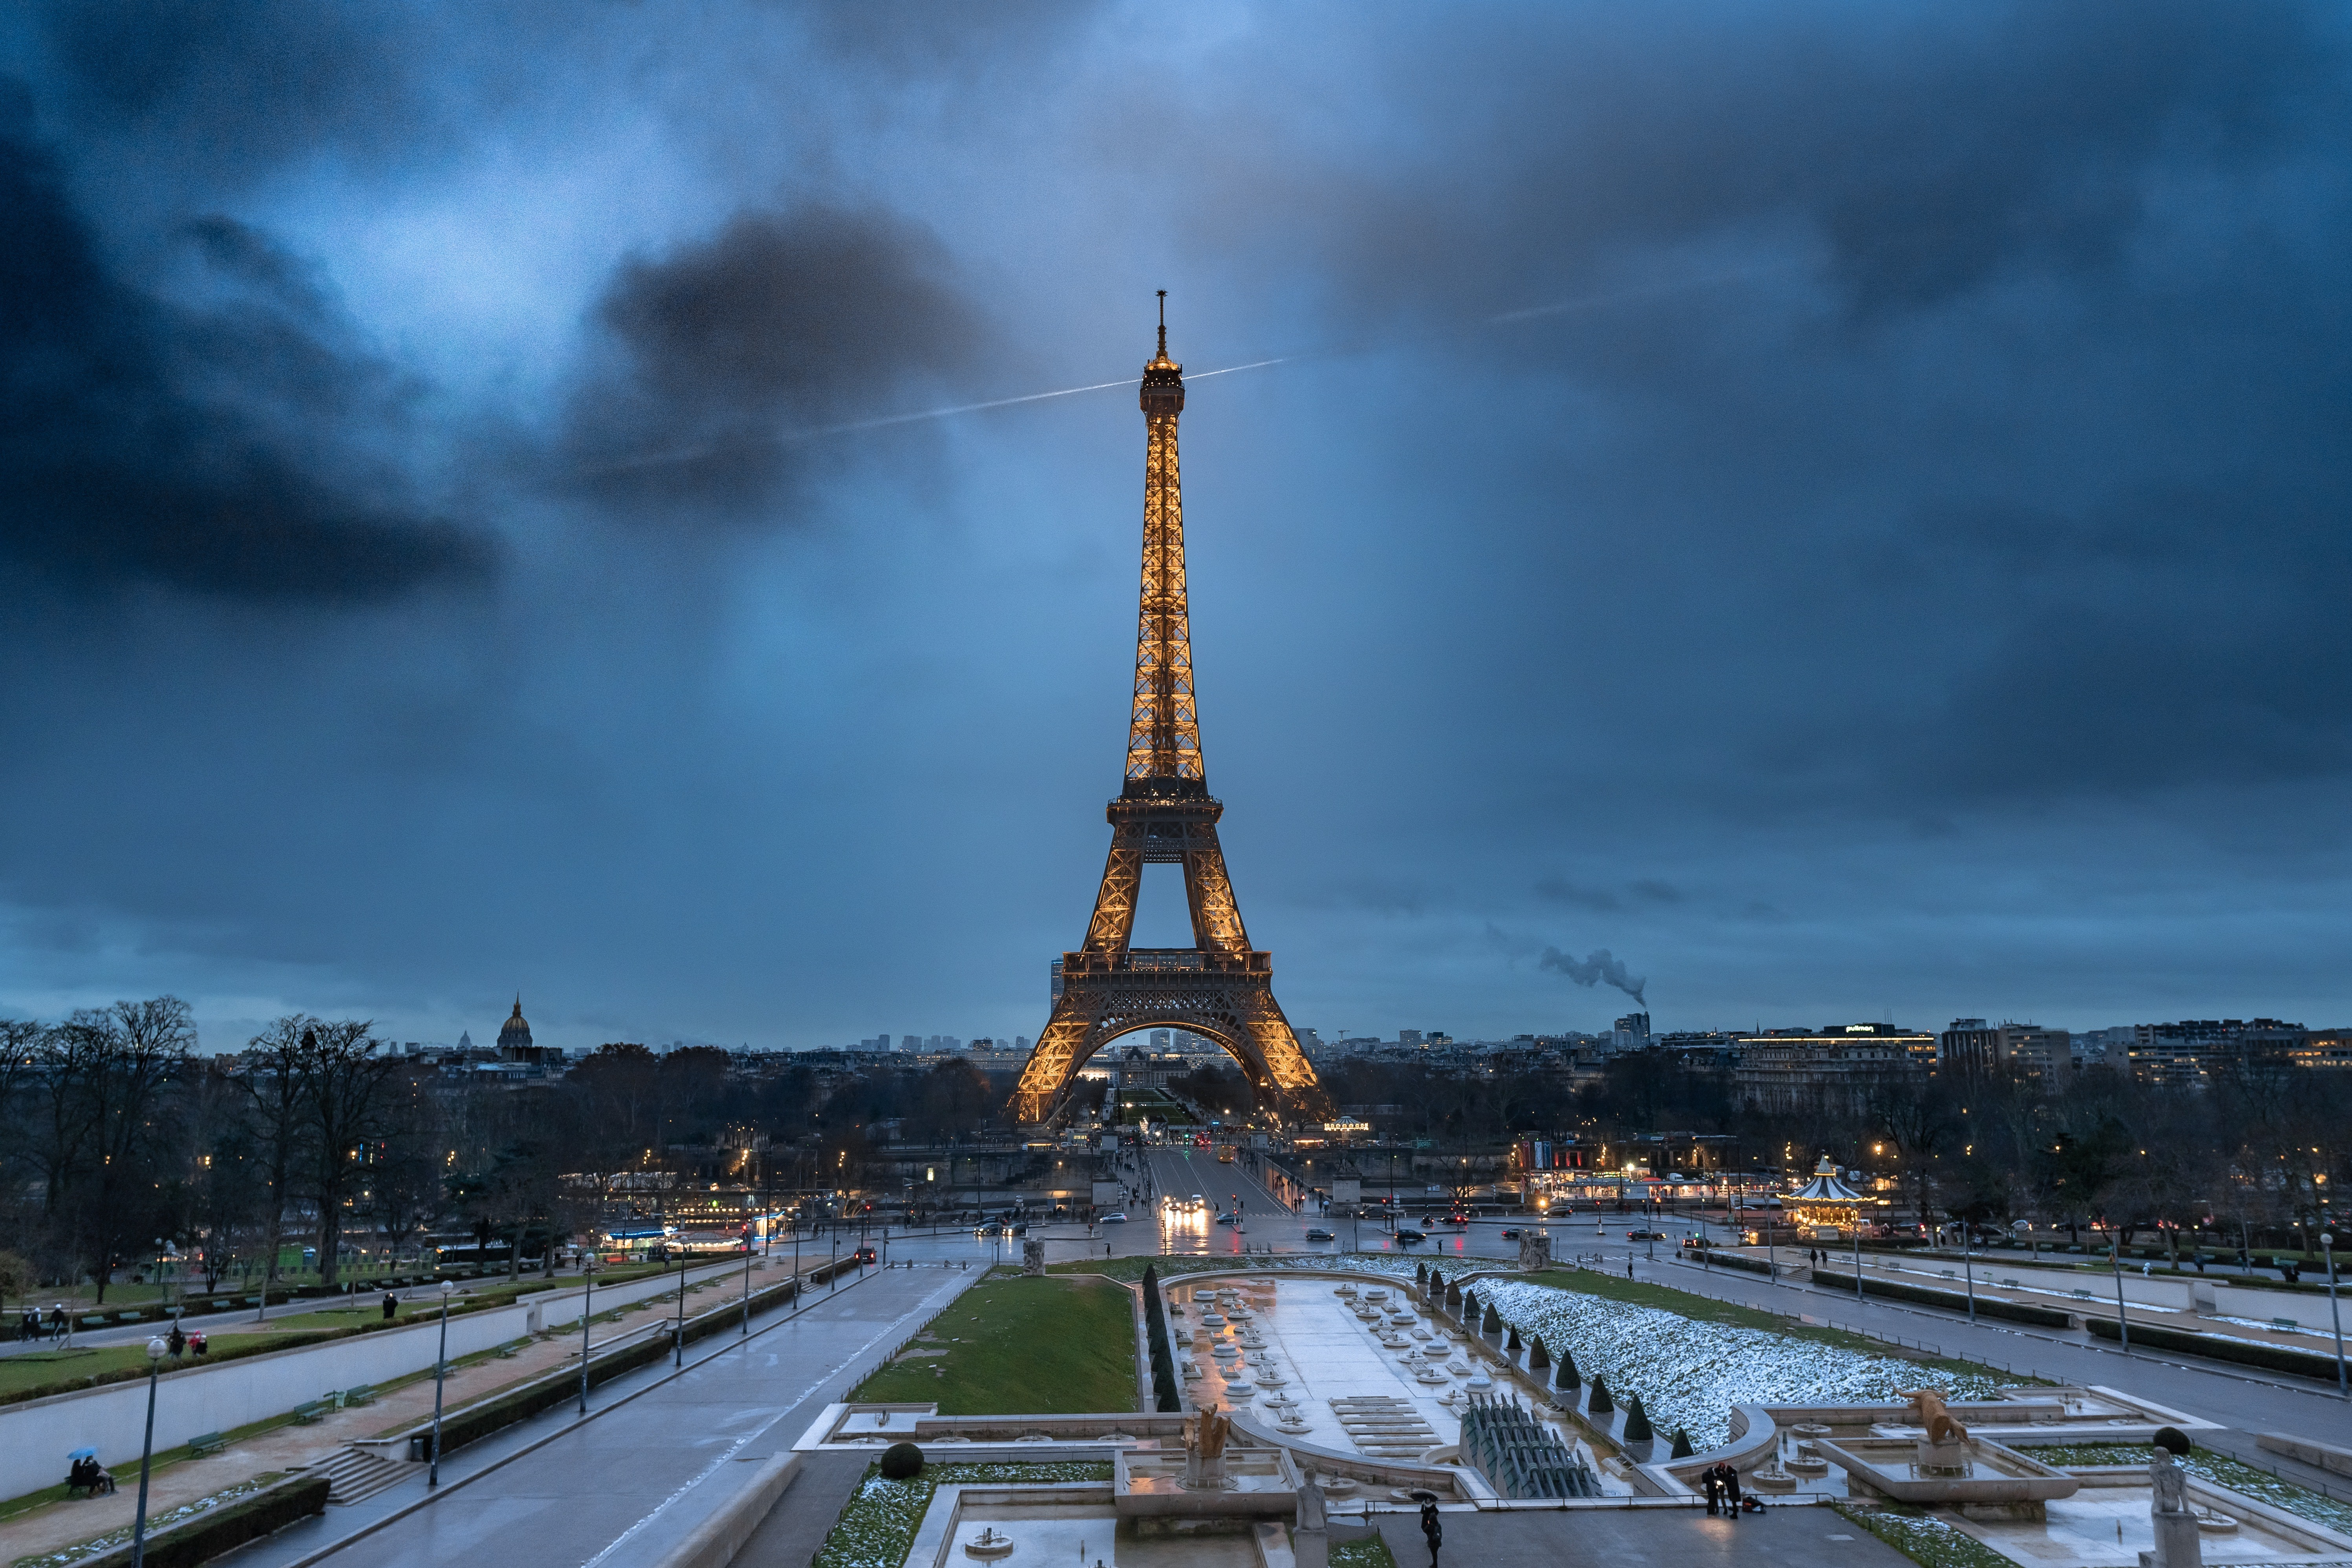 The Eiffel tower is seen in Paris, pictured at night.